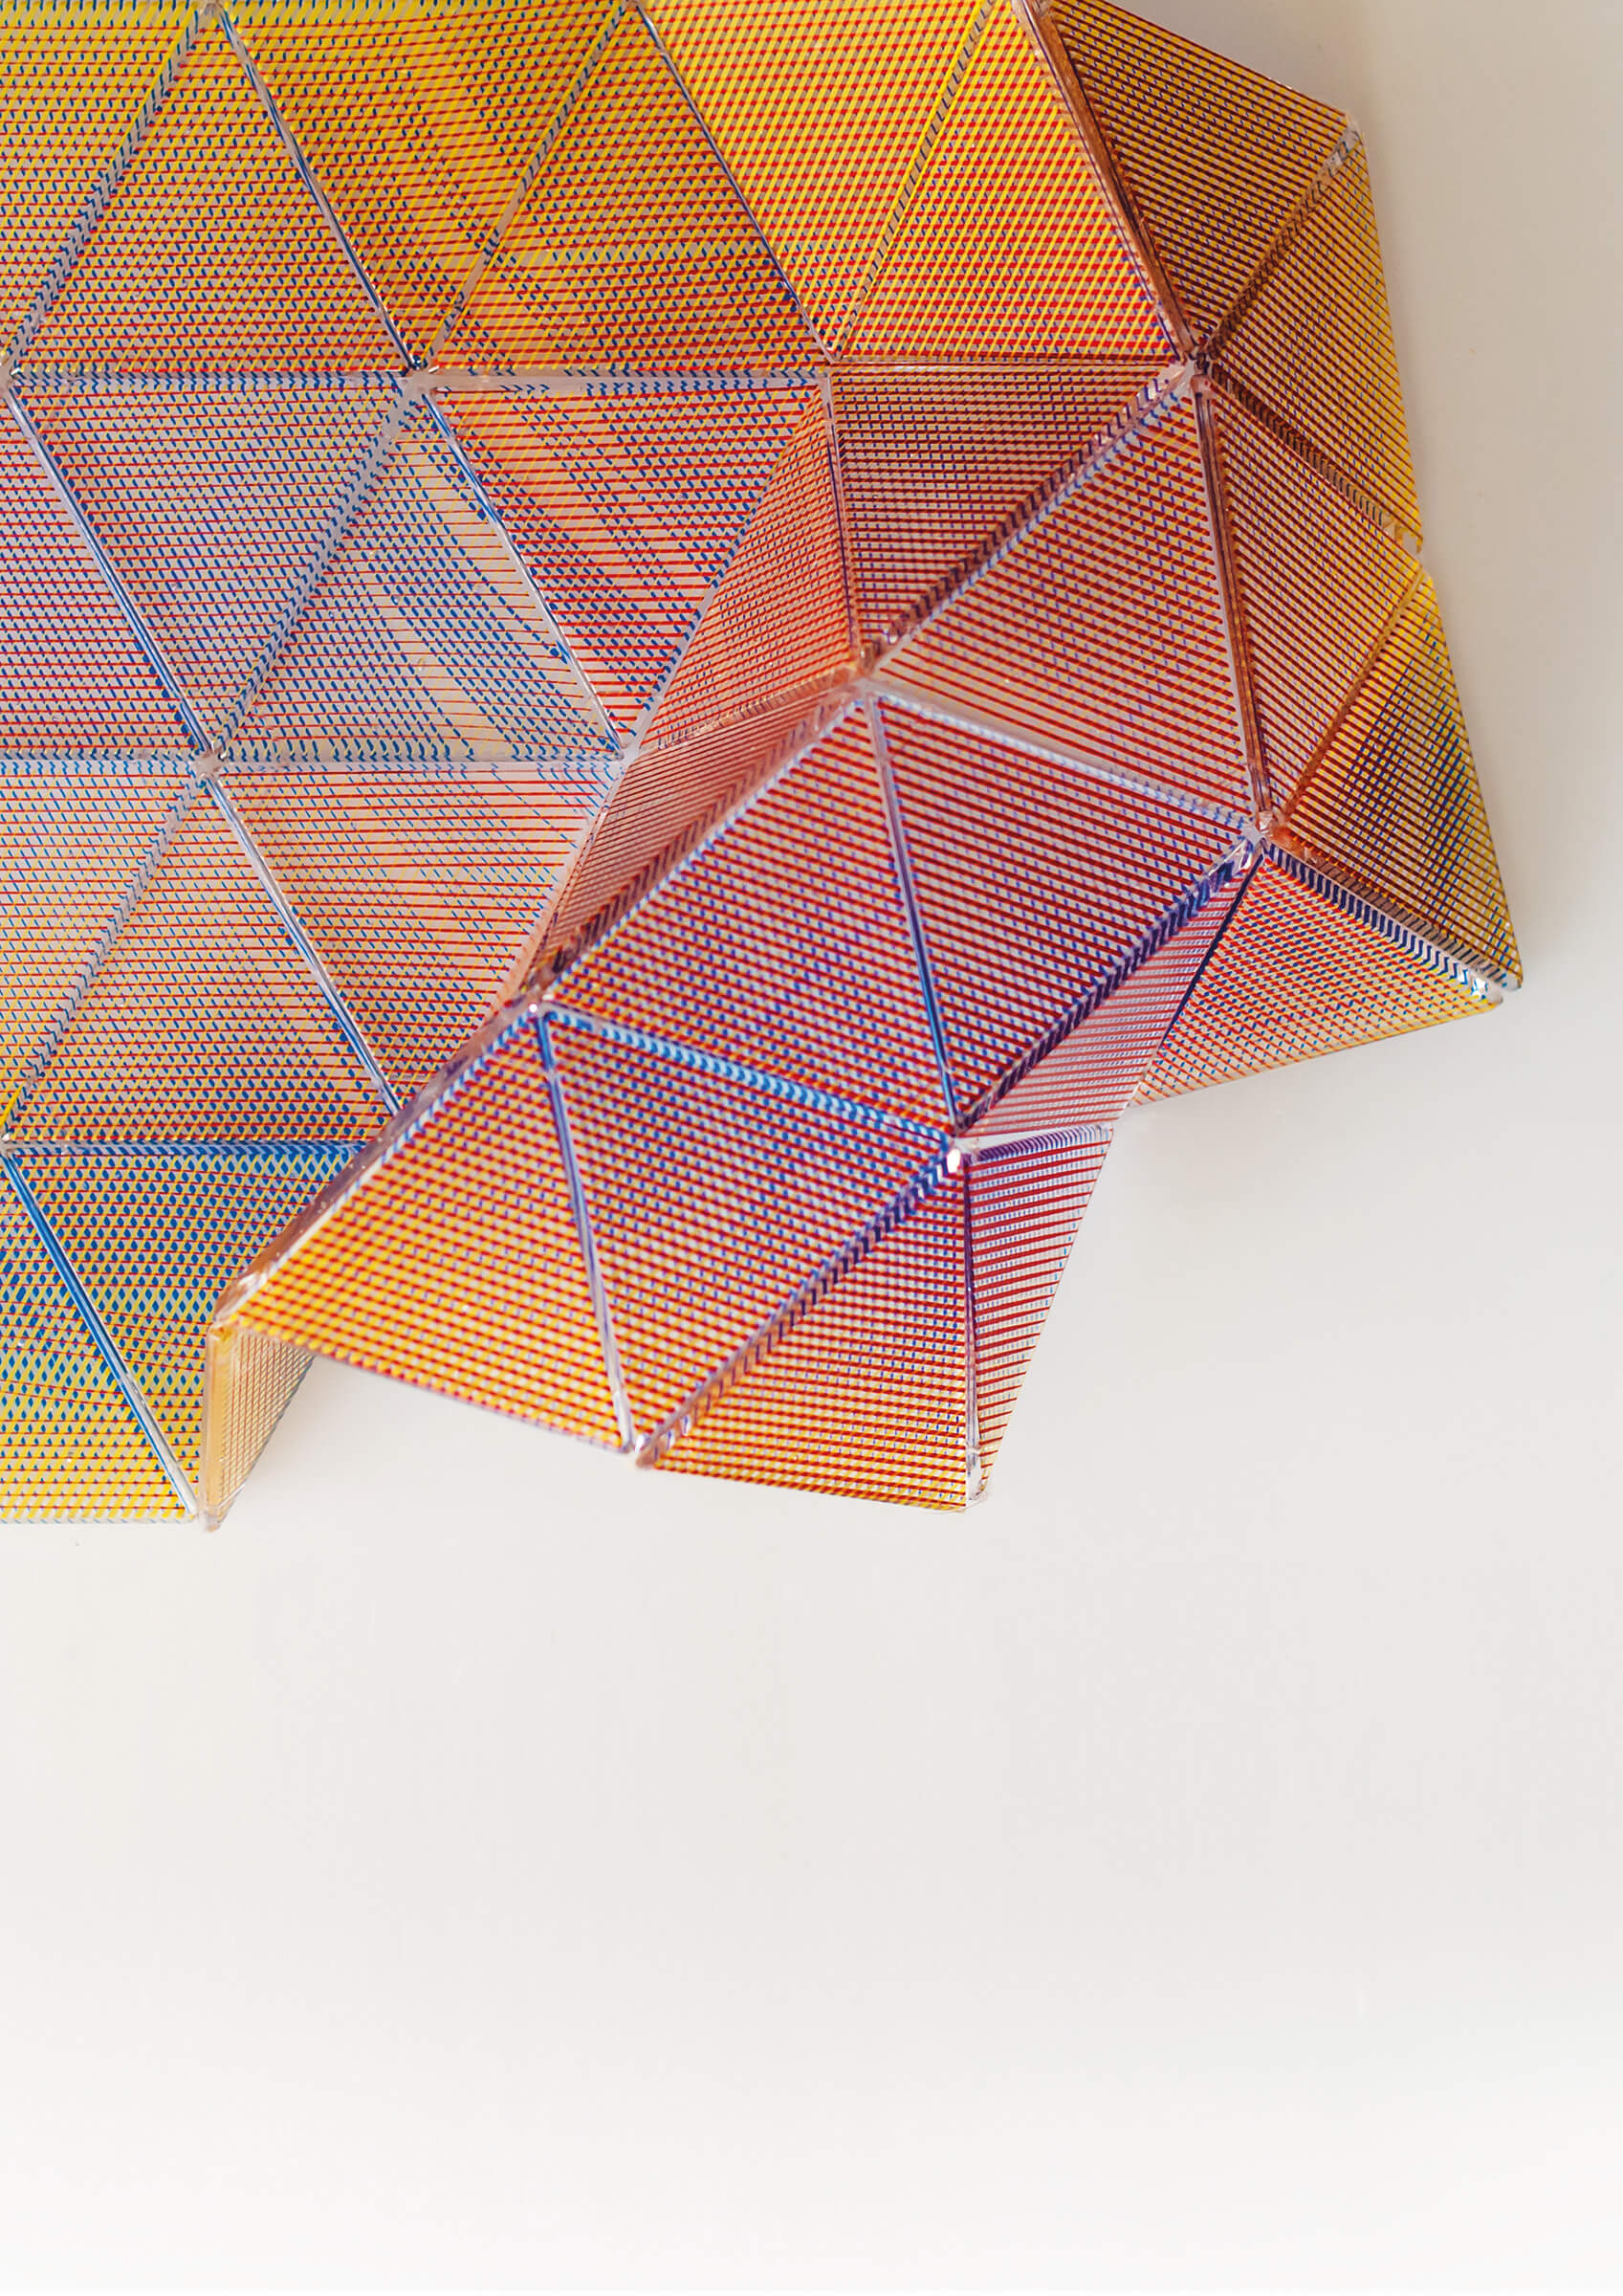 Photo of amber-colored glass triangled in articulated folding sheet